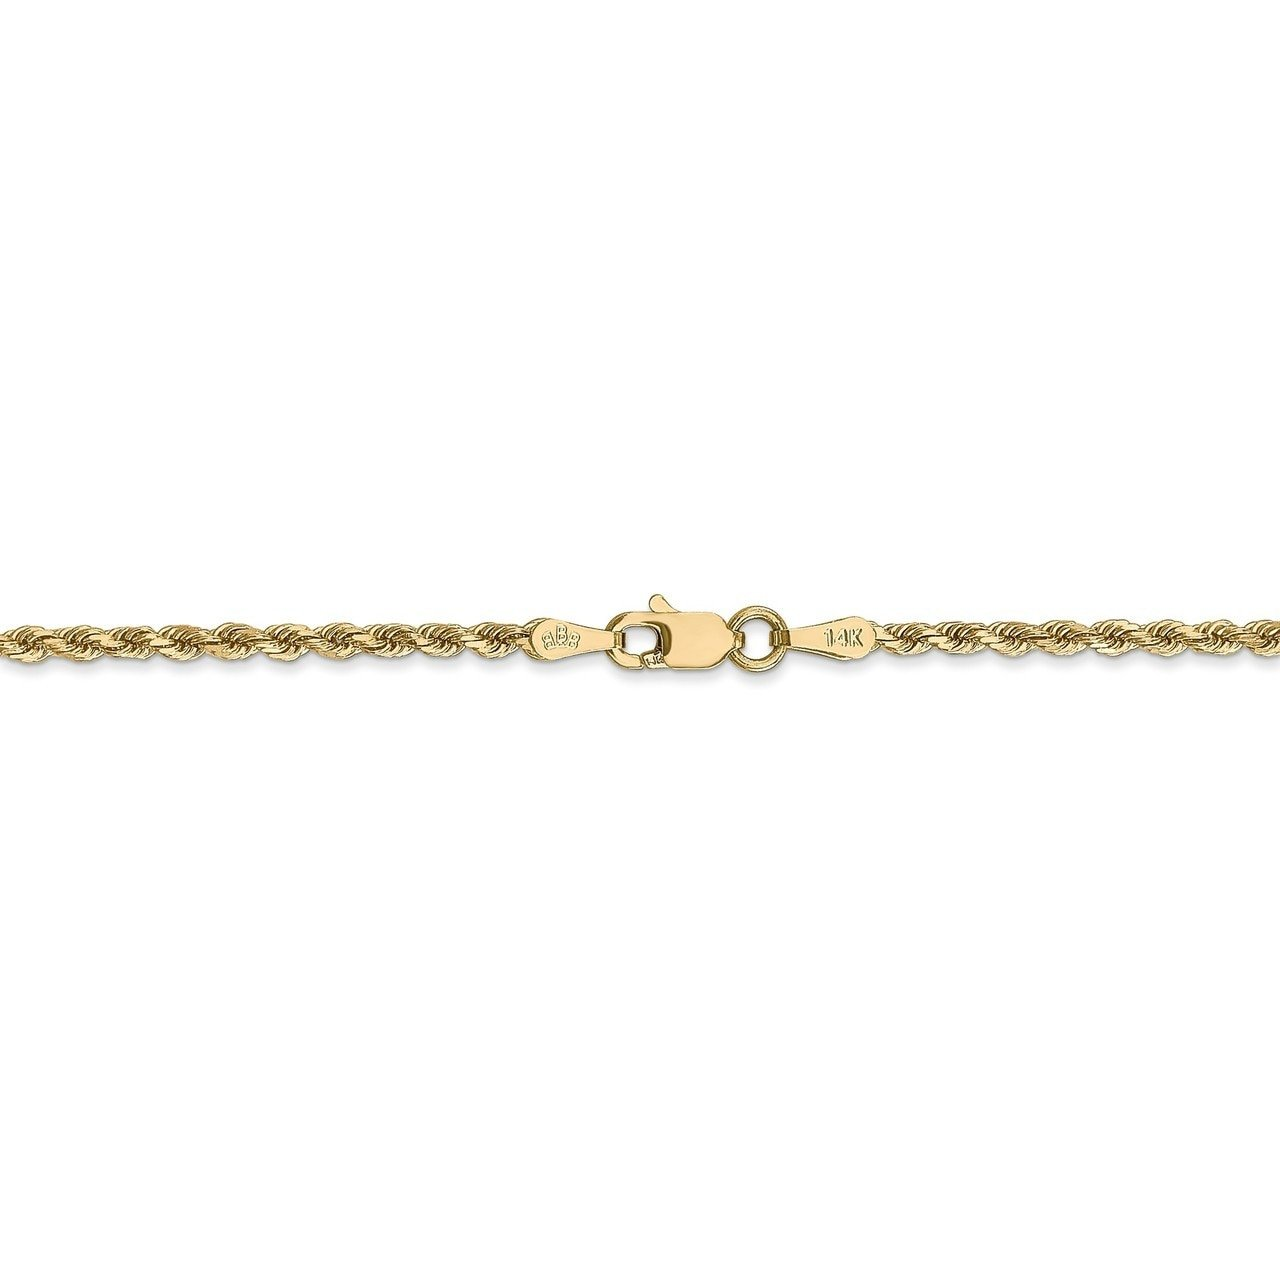 Bracelet or Anklet Lex /& Lu 14k Yellow Gold 2mm D//C Rope Chain Necklace